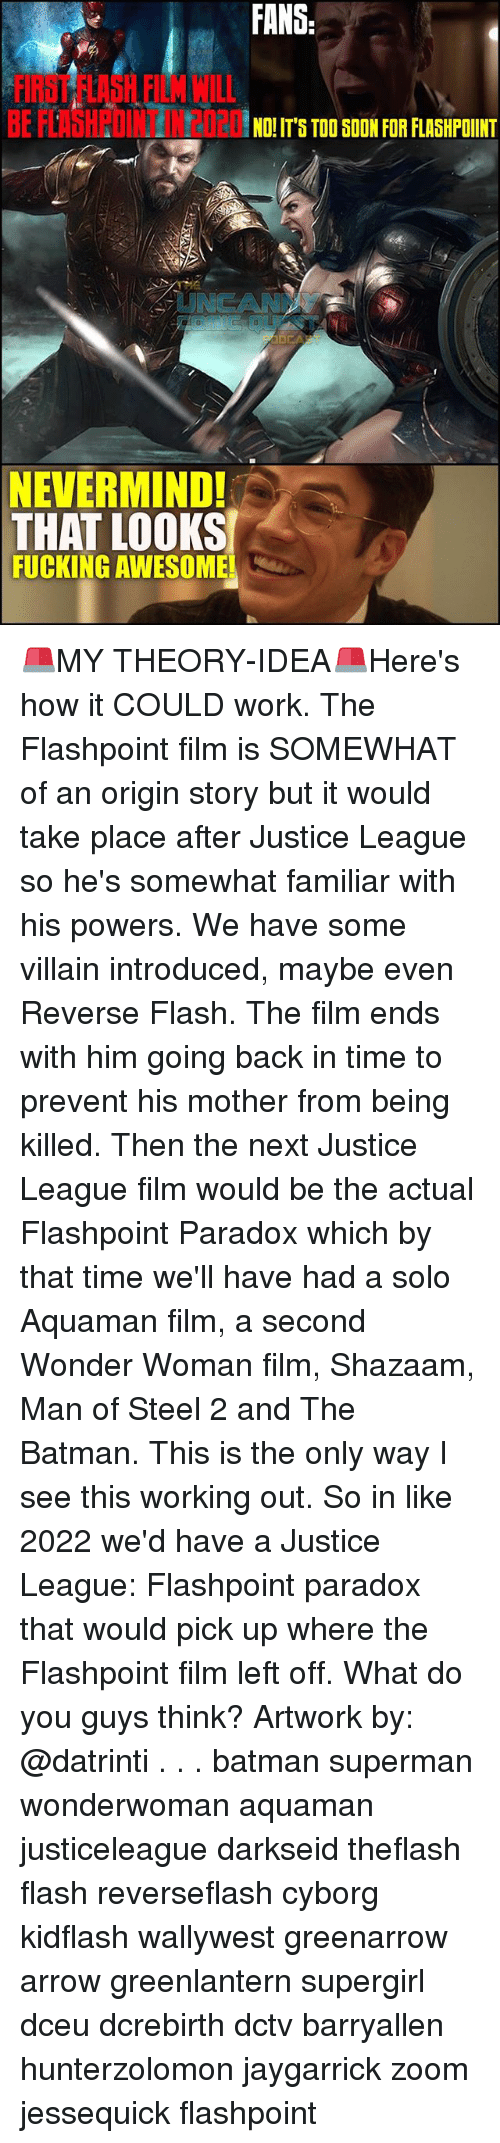 villainizing: FANS  FIRST FLASH FILM WILL  BE FLAHPOINT N2020S T00  NO! IT'S TOO SOON FOR FLASHPOINT  UNCANN  NEVERMIND!  THAT LOOKS  FUCKING AWESOME 🚨MY THEORY-IDEA🚨Here's how it COULD work. The Flashpoint film is SOMEWHAT of an origin story but it would take place after Justice League so he's somewhat familiar with his powers. We have some villain introduced, maybe even Reverse Flash. The film ends with him going back in time to prevent his mother from being killed. Then the next Justice League film would be the actual Flashpoint Paradox which by that time we'll have had a solo Aquaman film, a second Wonder Woman film, Shazaam, Man of Steel 2 and The Batman. This is the only way I see this working out. So in like 2022 we'd have a Justice League: Flashpoint paradox that would pick up where the Flashpoint film left off. What do you guys think? Artwork by: @datrinti . . . batman superman wonderwoman aquaman justiceleague darkseid theflash flash reverseflash cyborg kidflash wallywest greenarrow arrow greenlantern supergirl dceu dcrebirth dctv barryallen hunterzolomon jaygarrick zoom jessequick flashpoint